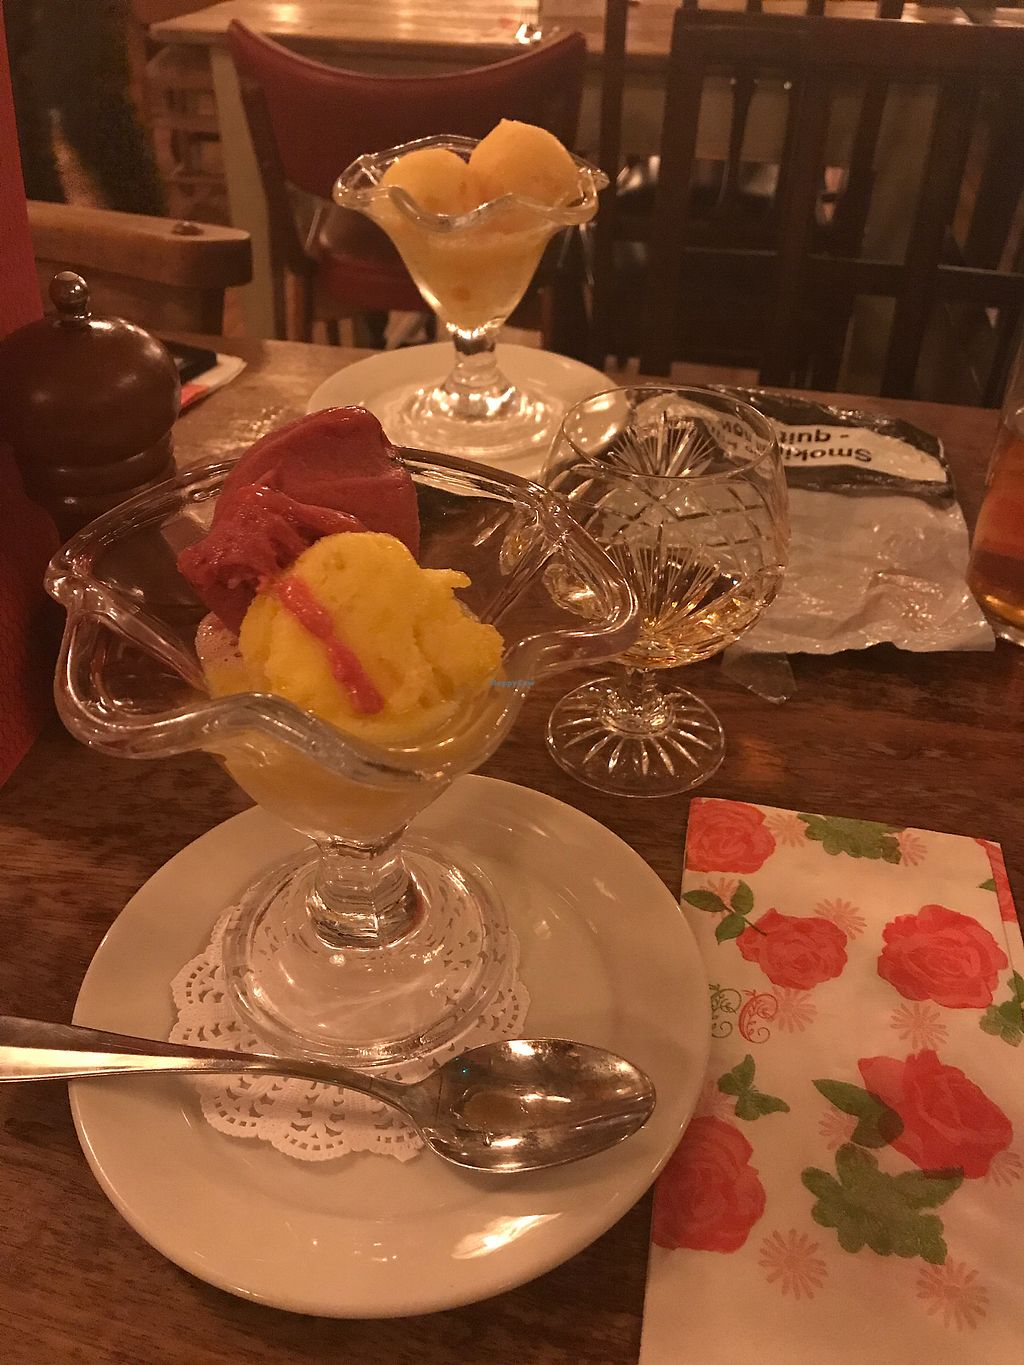 """Photo of The Cosy Club  by <a href=""""/members/profile/MelbourneMegan"""">MelbourneMegan</a> <br/>Vegan sorbet <br/> September 8, 2017  - <a href='/contact/abuse/image/79966/302116'>Report</a>"""